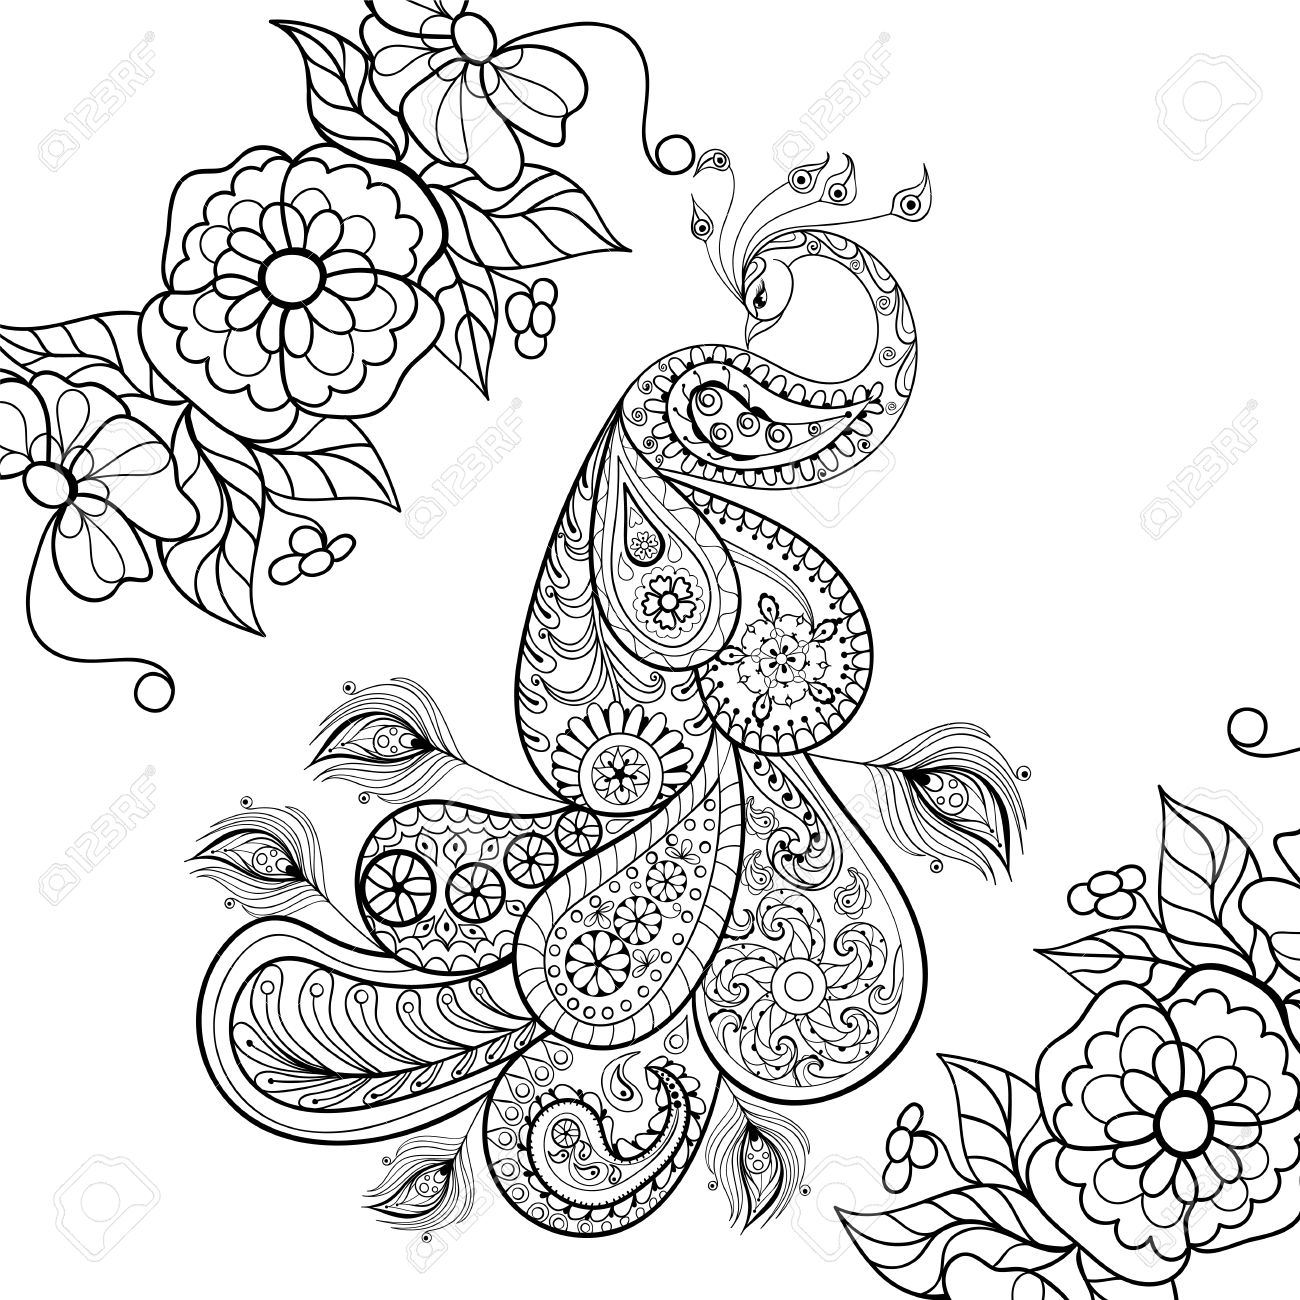 Therapeutic coloring pages for adults - Stress Therapy Coloring Pages Vector Zentangle Peacock Totem In Flowersfor Adult Anti Stress Coloring Page